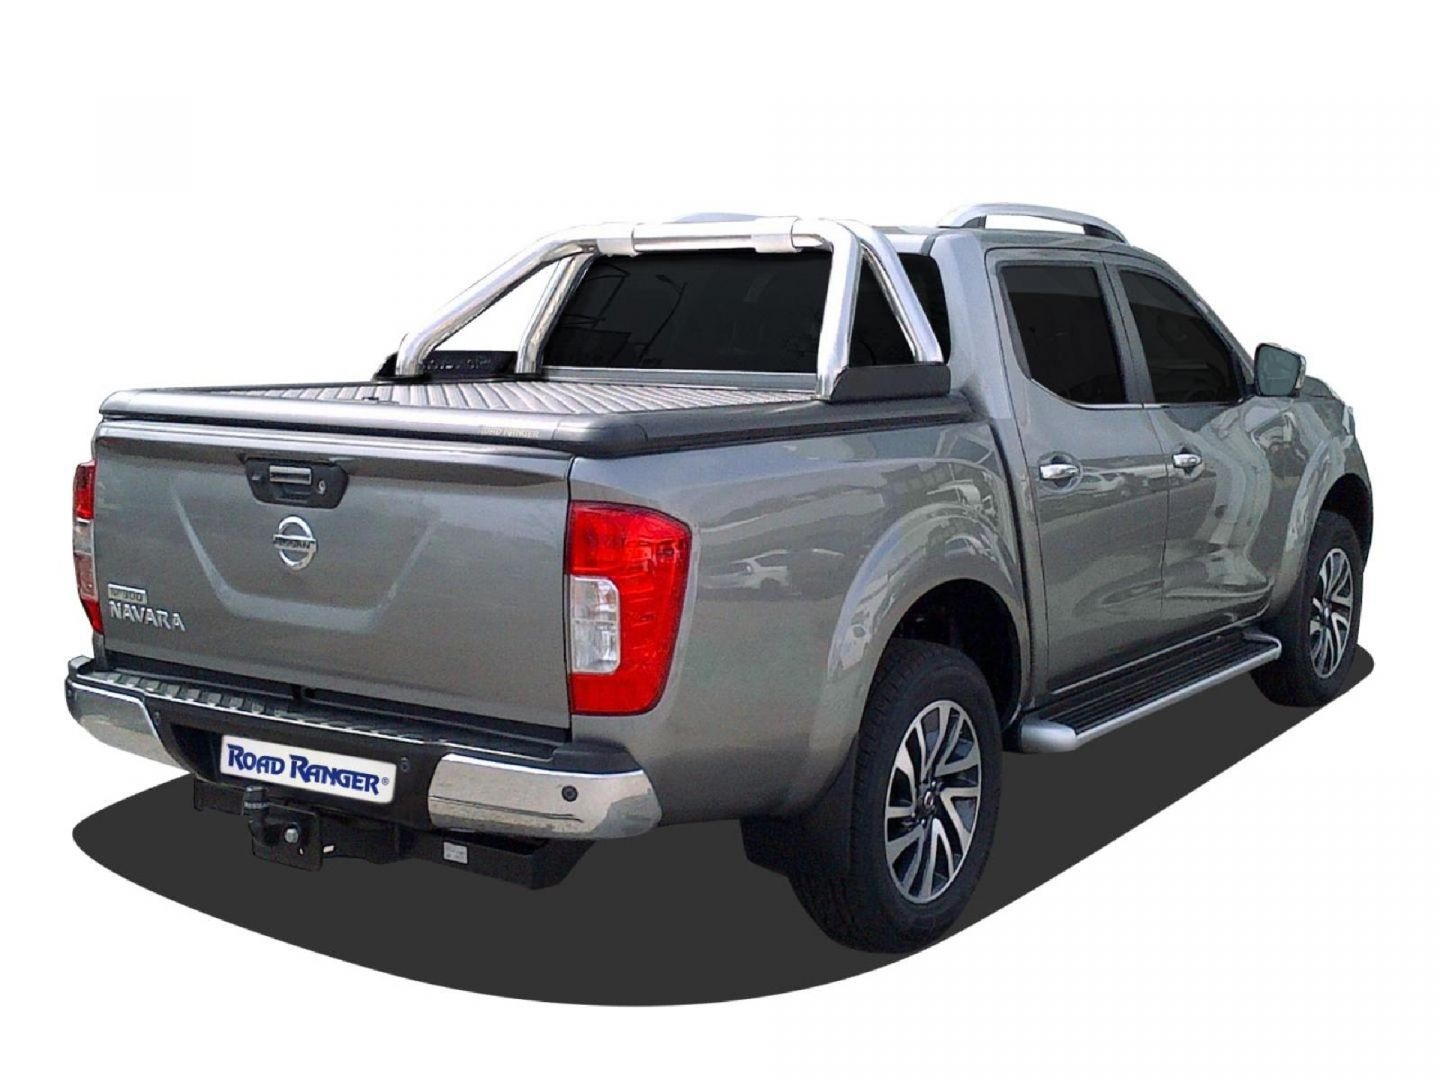 Truck Bed Covers For The Nissan Navara Road Ranger